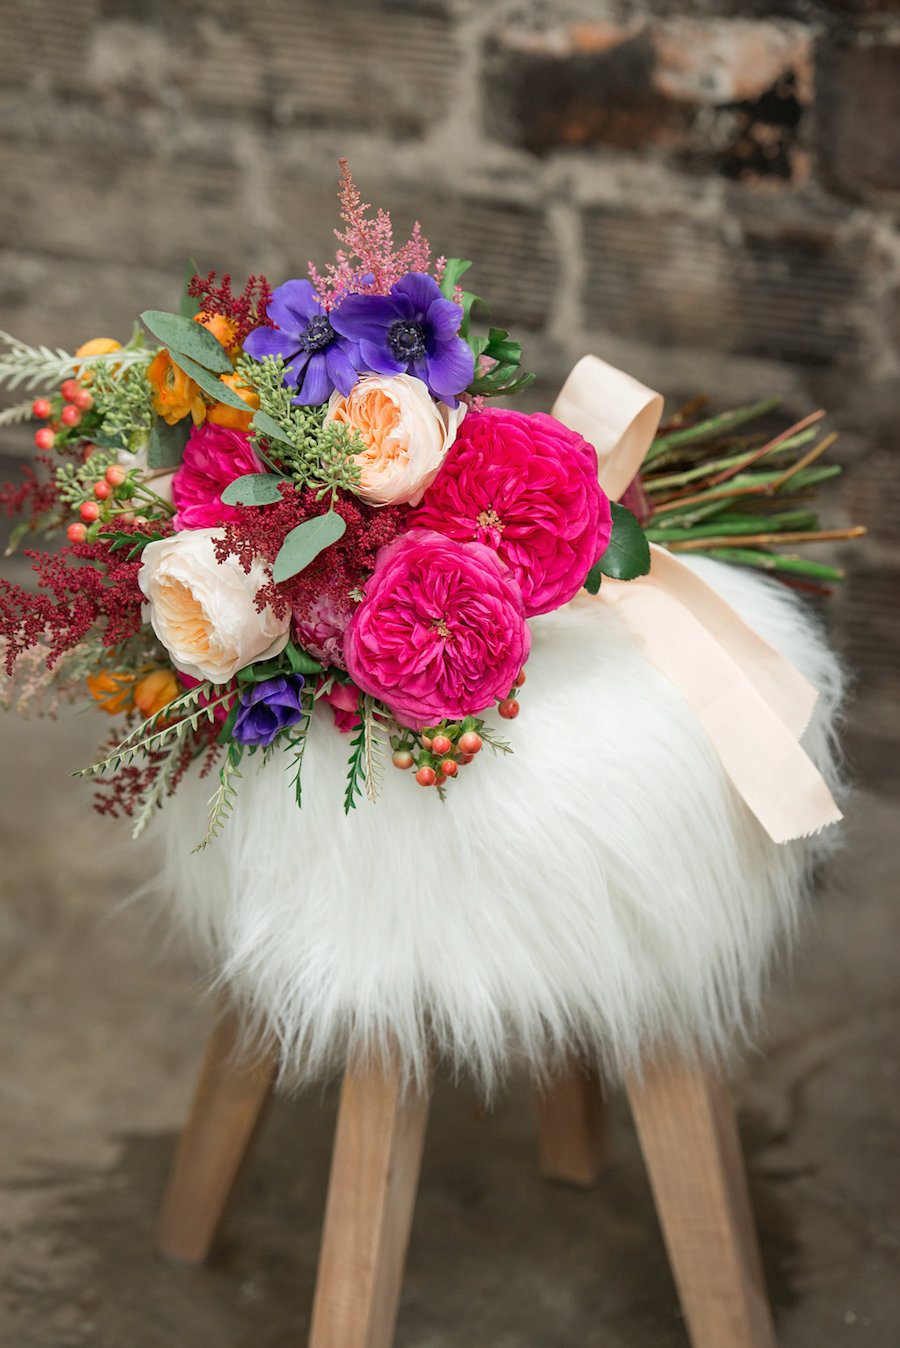 Boho Chic Garden Inspired Bouquet with Vibrant Pink and Purple Flowers with Greenery and Fur Decor Accents by Tampa Bay Florist Carrollwood Florist | Tampa Bay Wedding Photographer Artful Adventures Photography